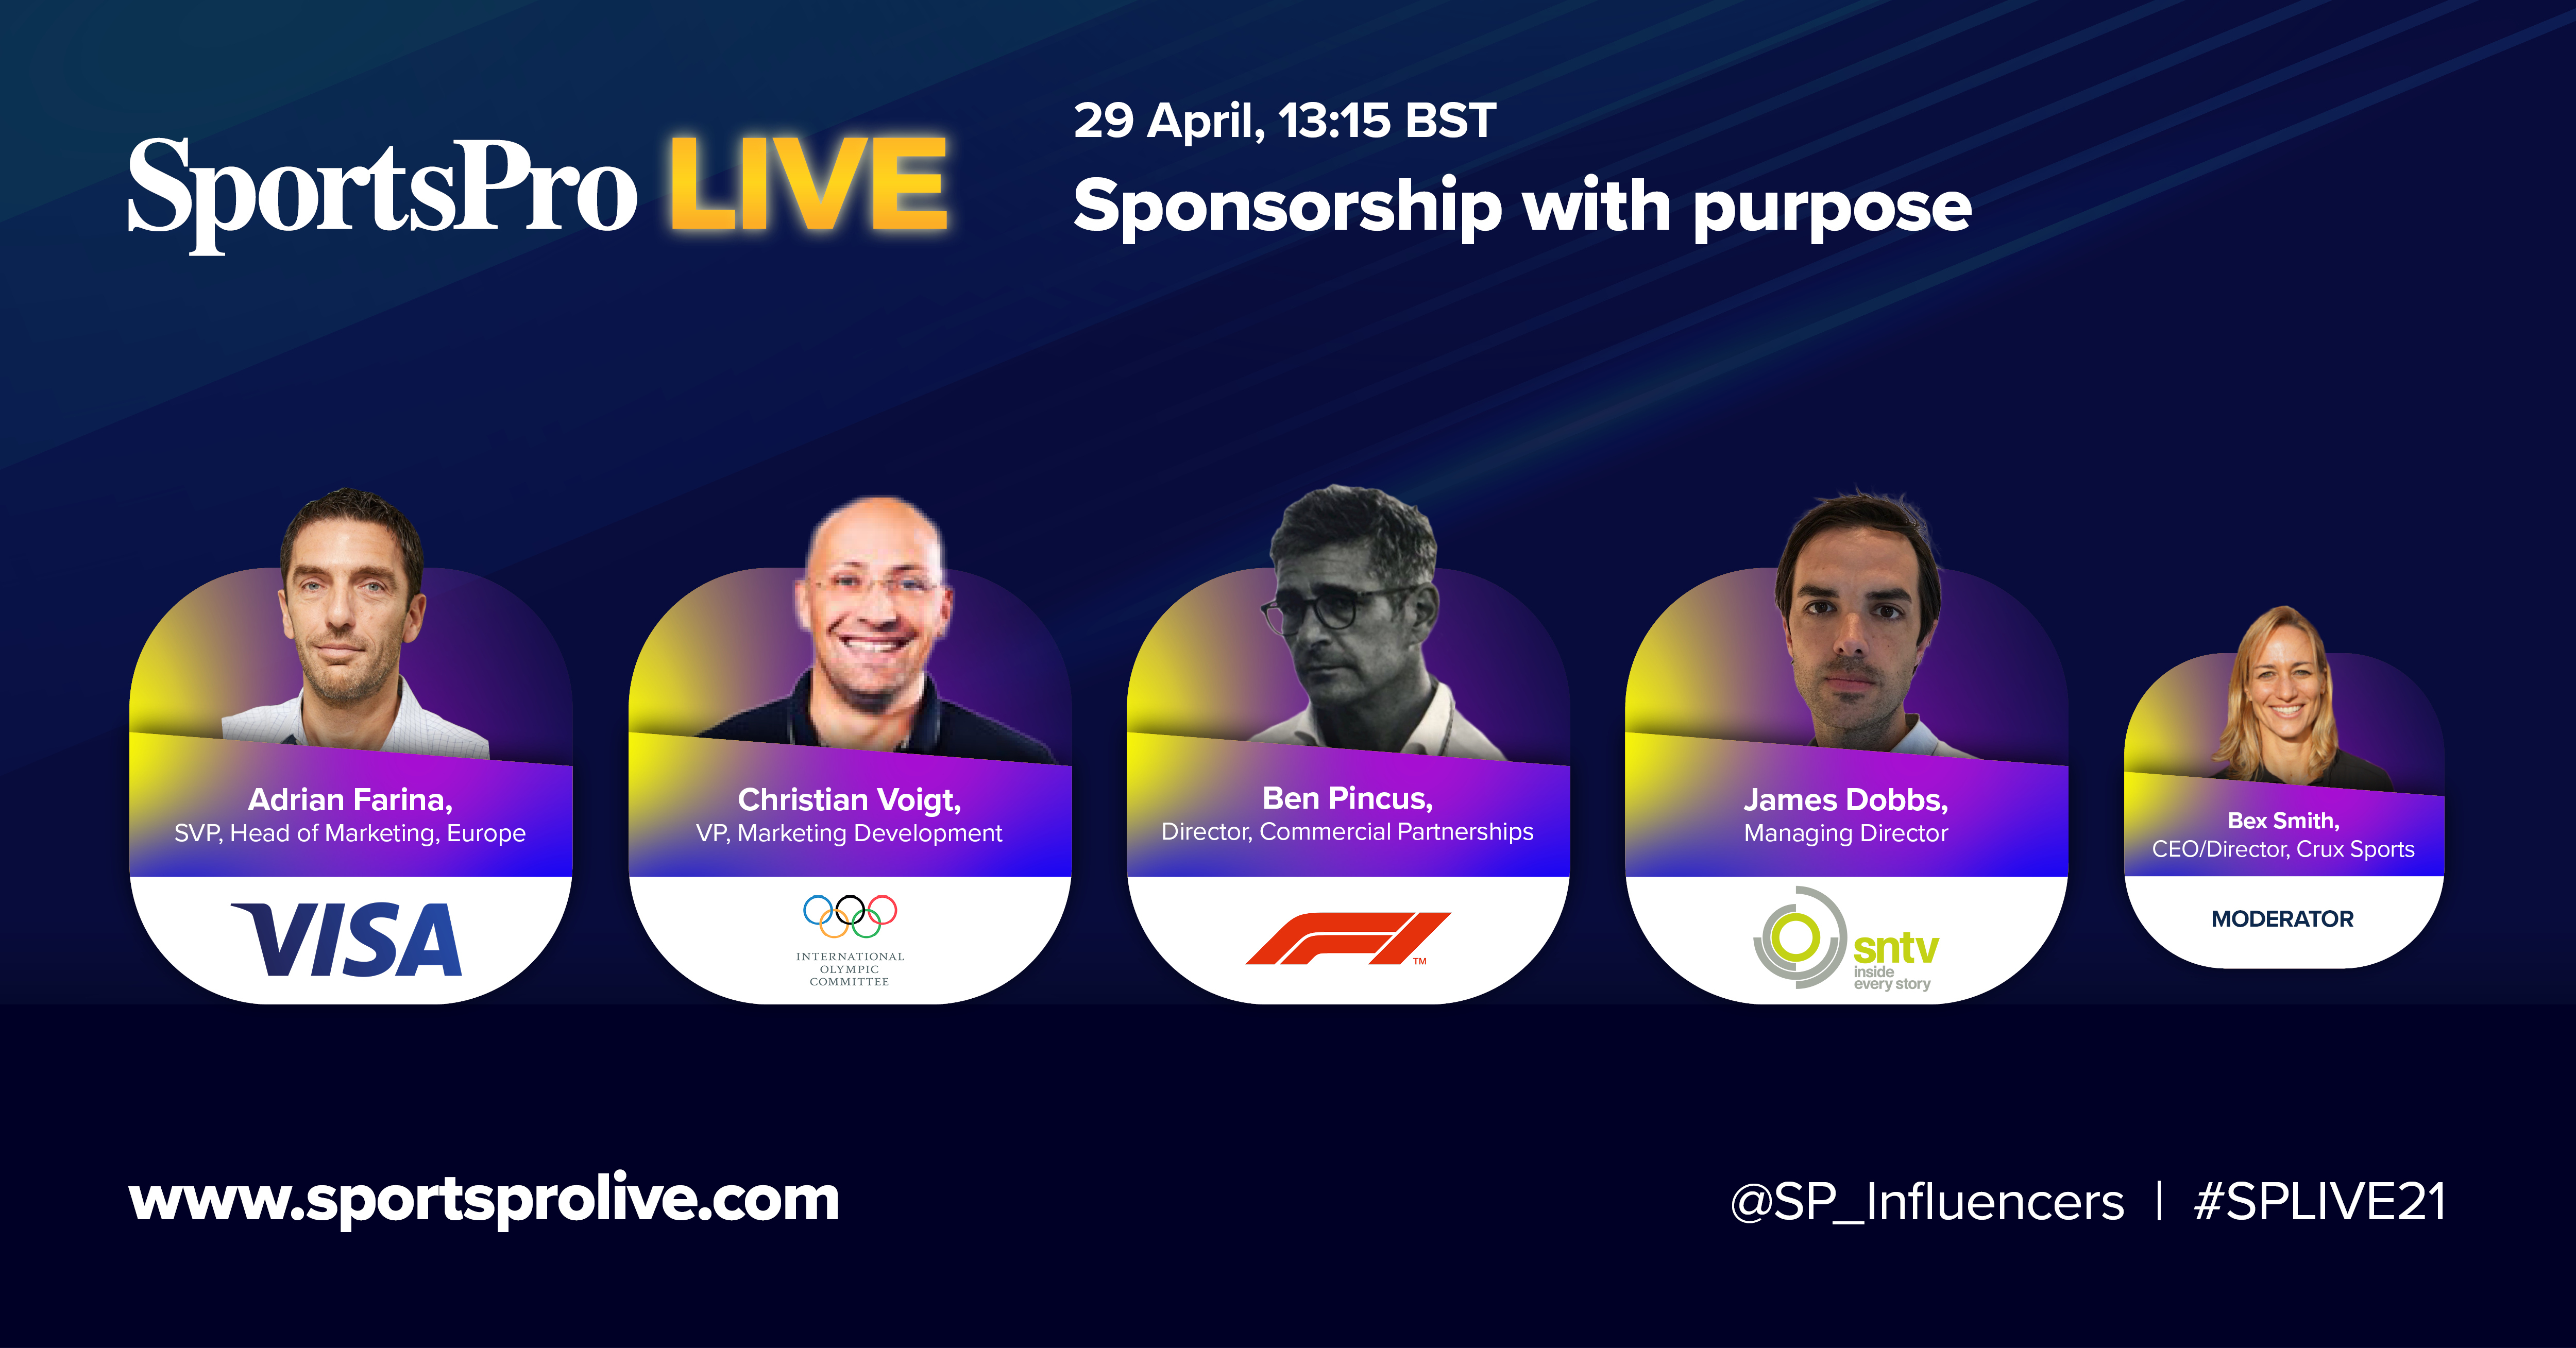 sntv joins panel discussion at SportsPro Live